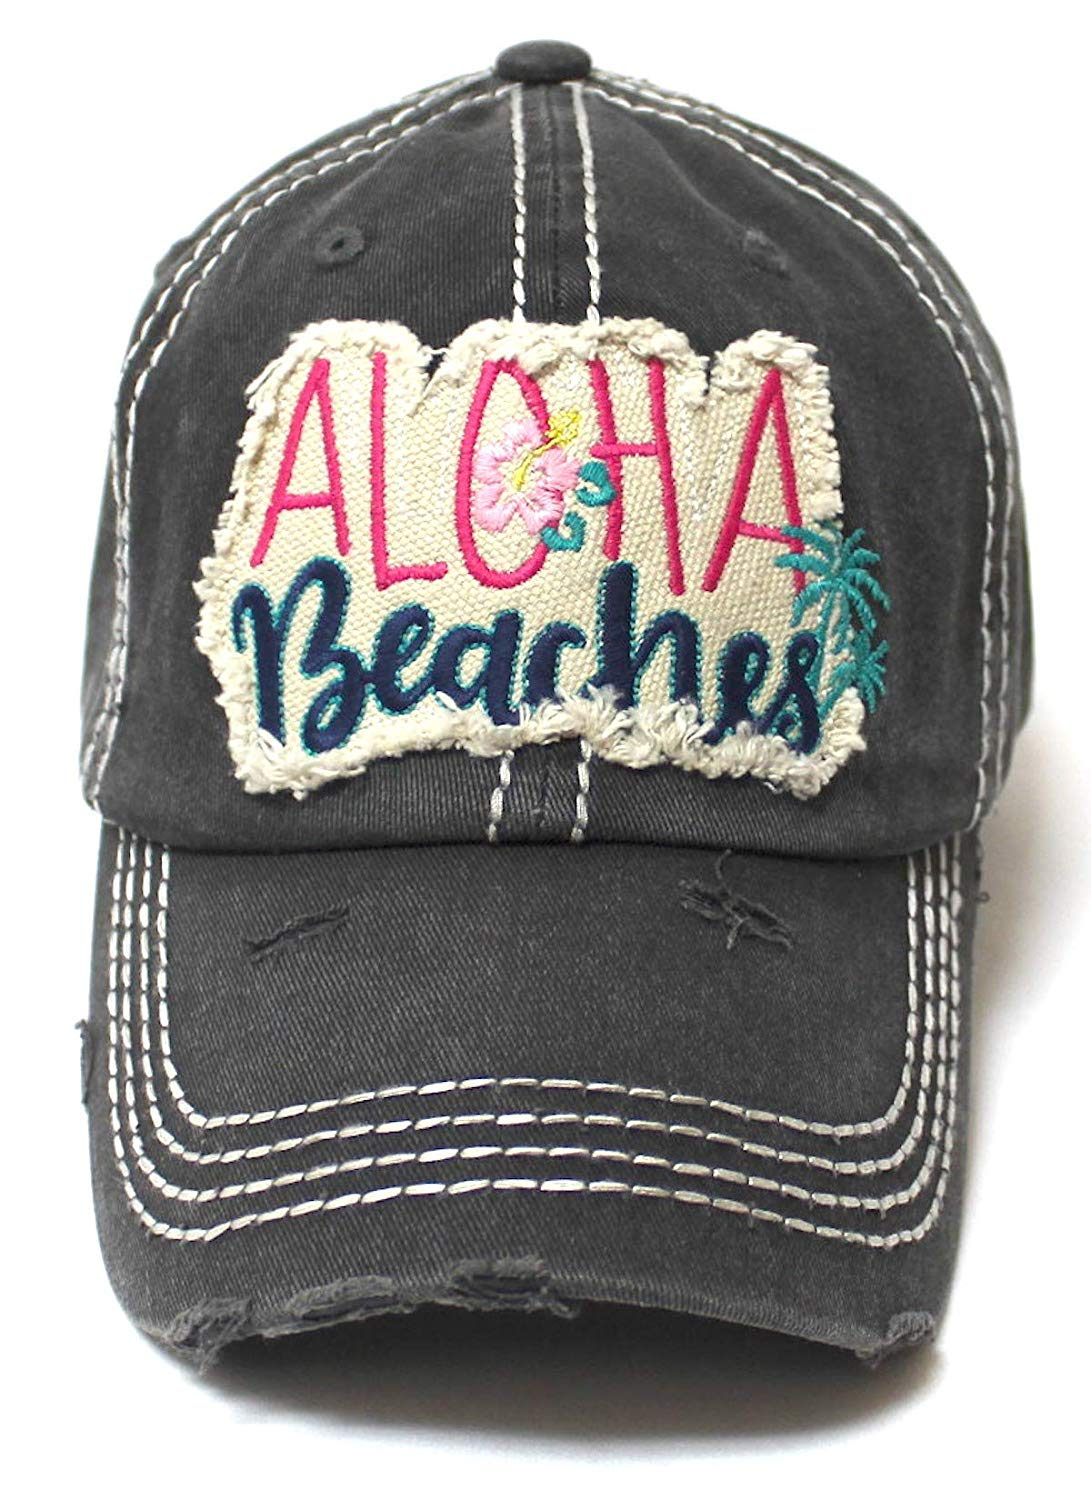 Aloha Beaches Patch Embroidery Distressed Baseball Hat, Vintage Black - Caps 'N Vintage